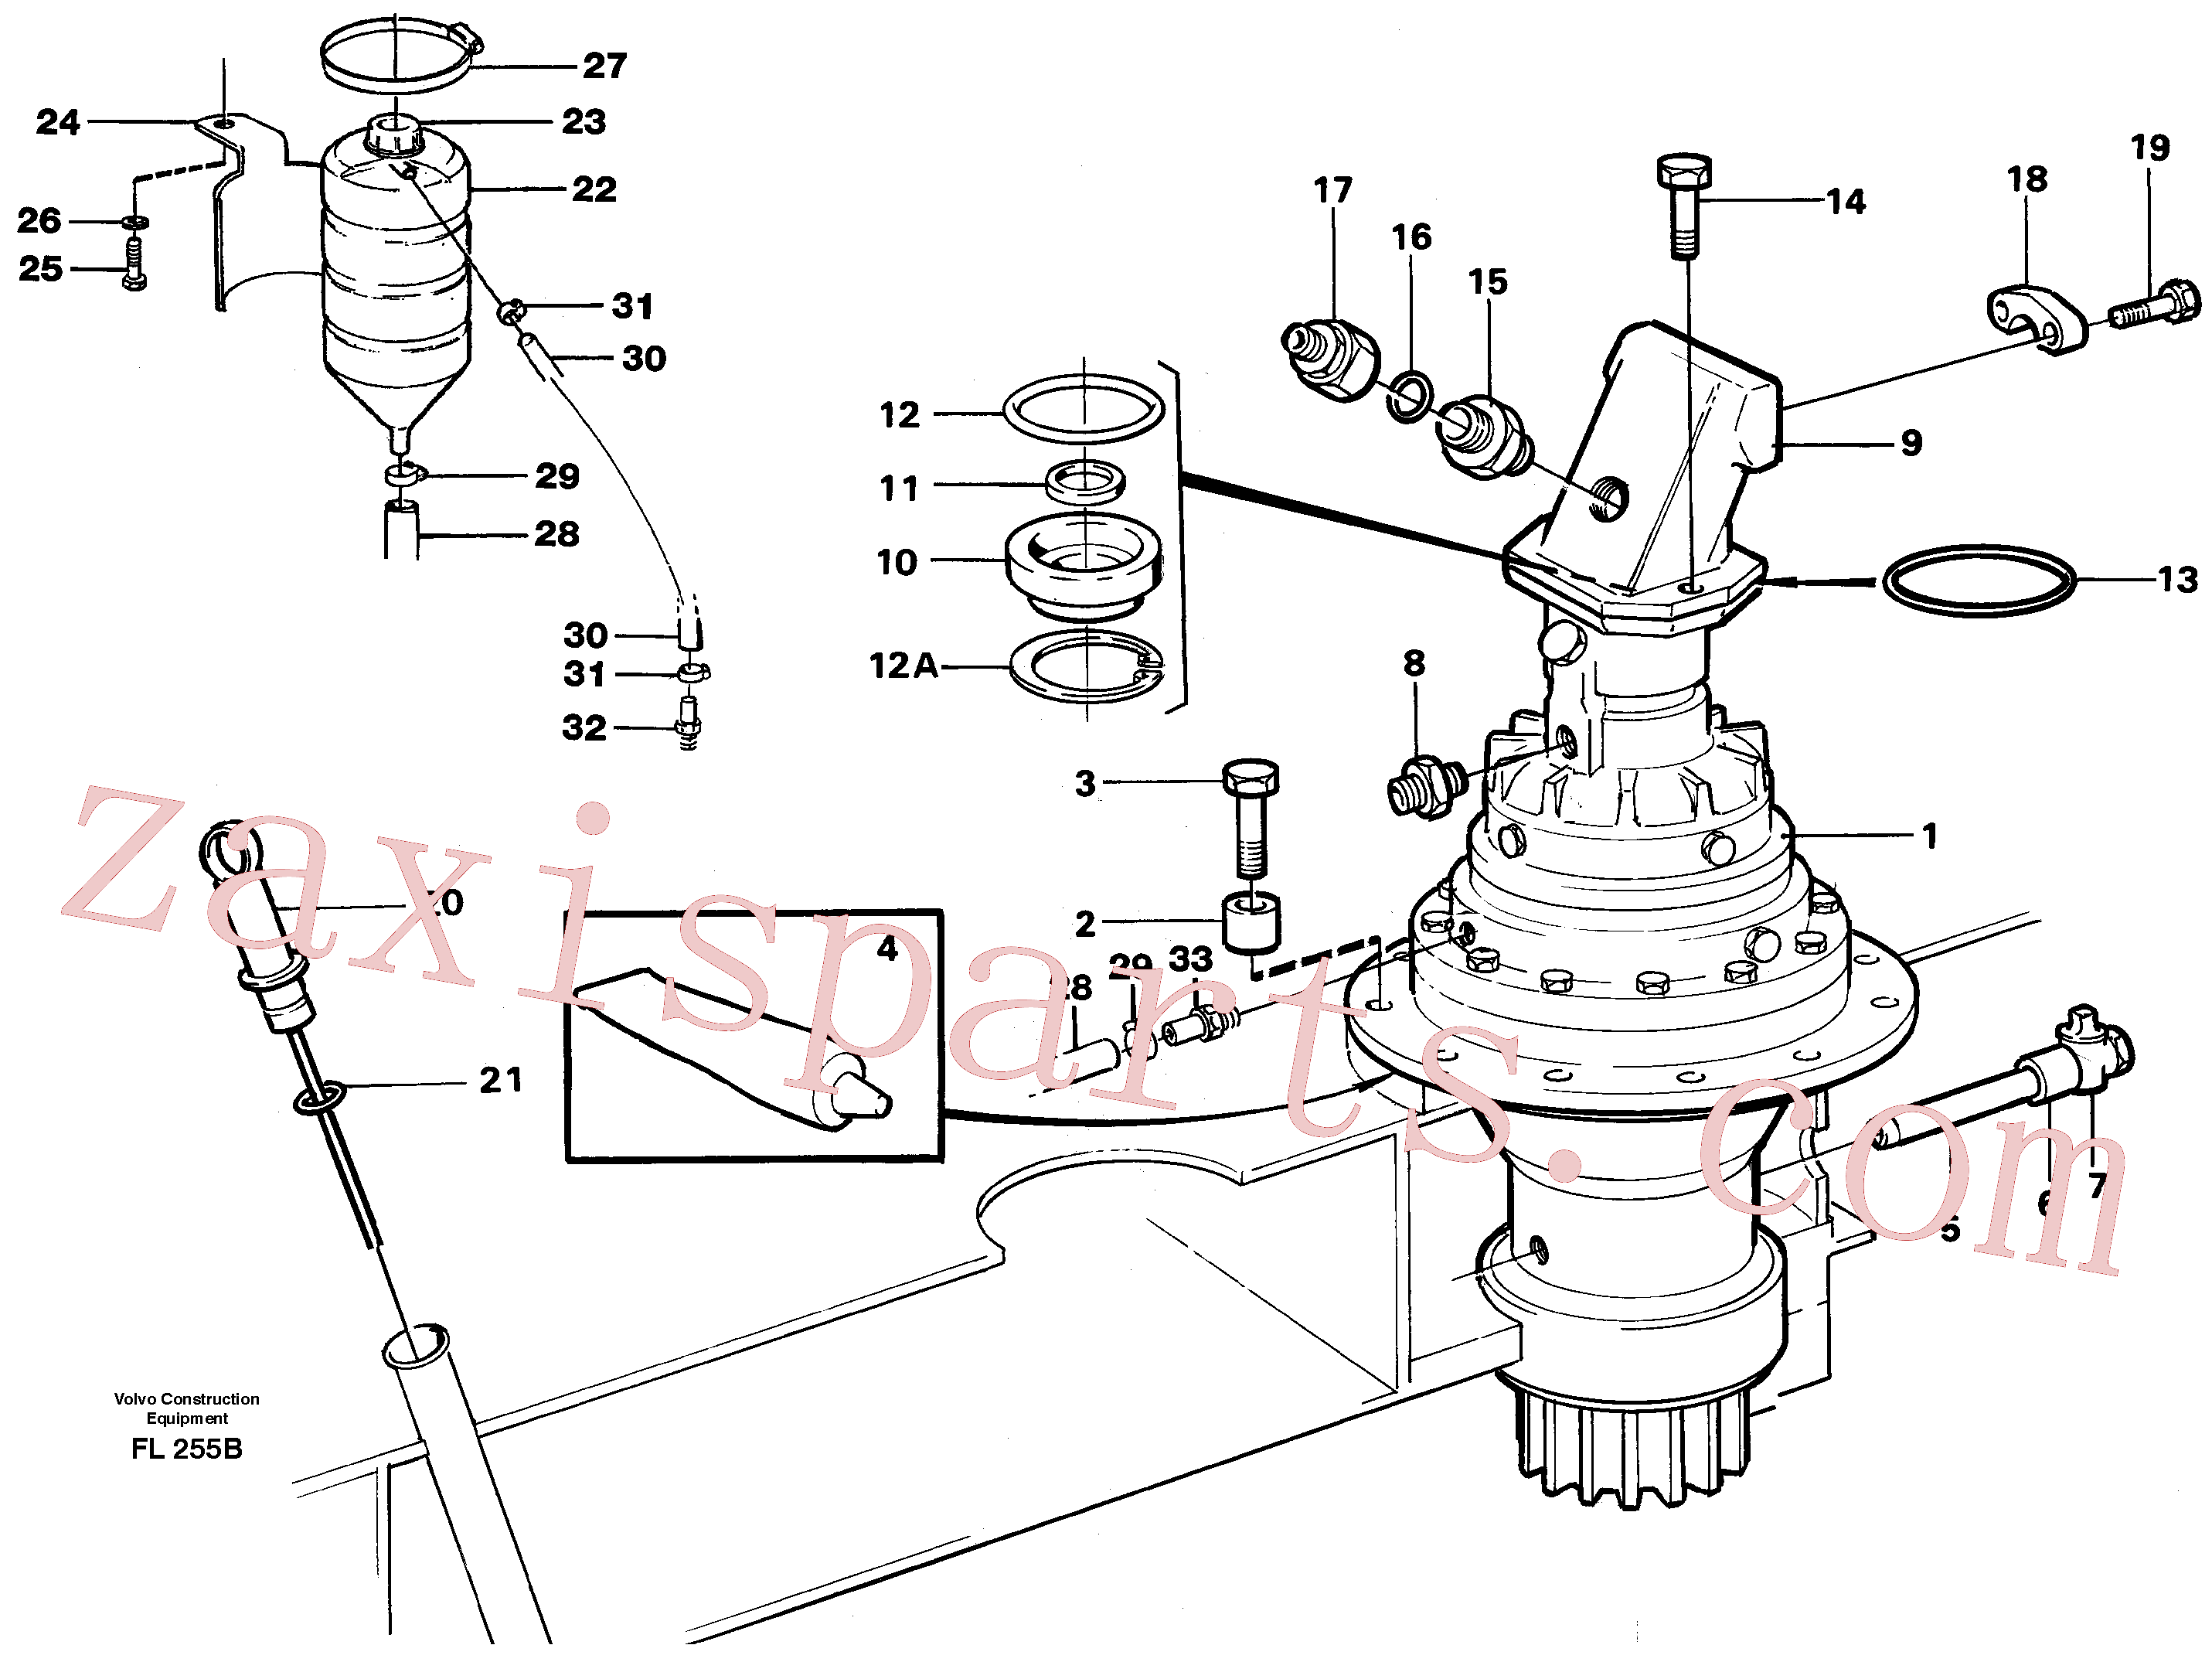 VOE14340910 for Volvo Superstructure with slew transmission(FL255B assembly)